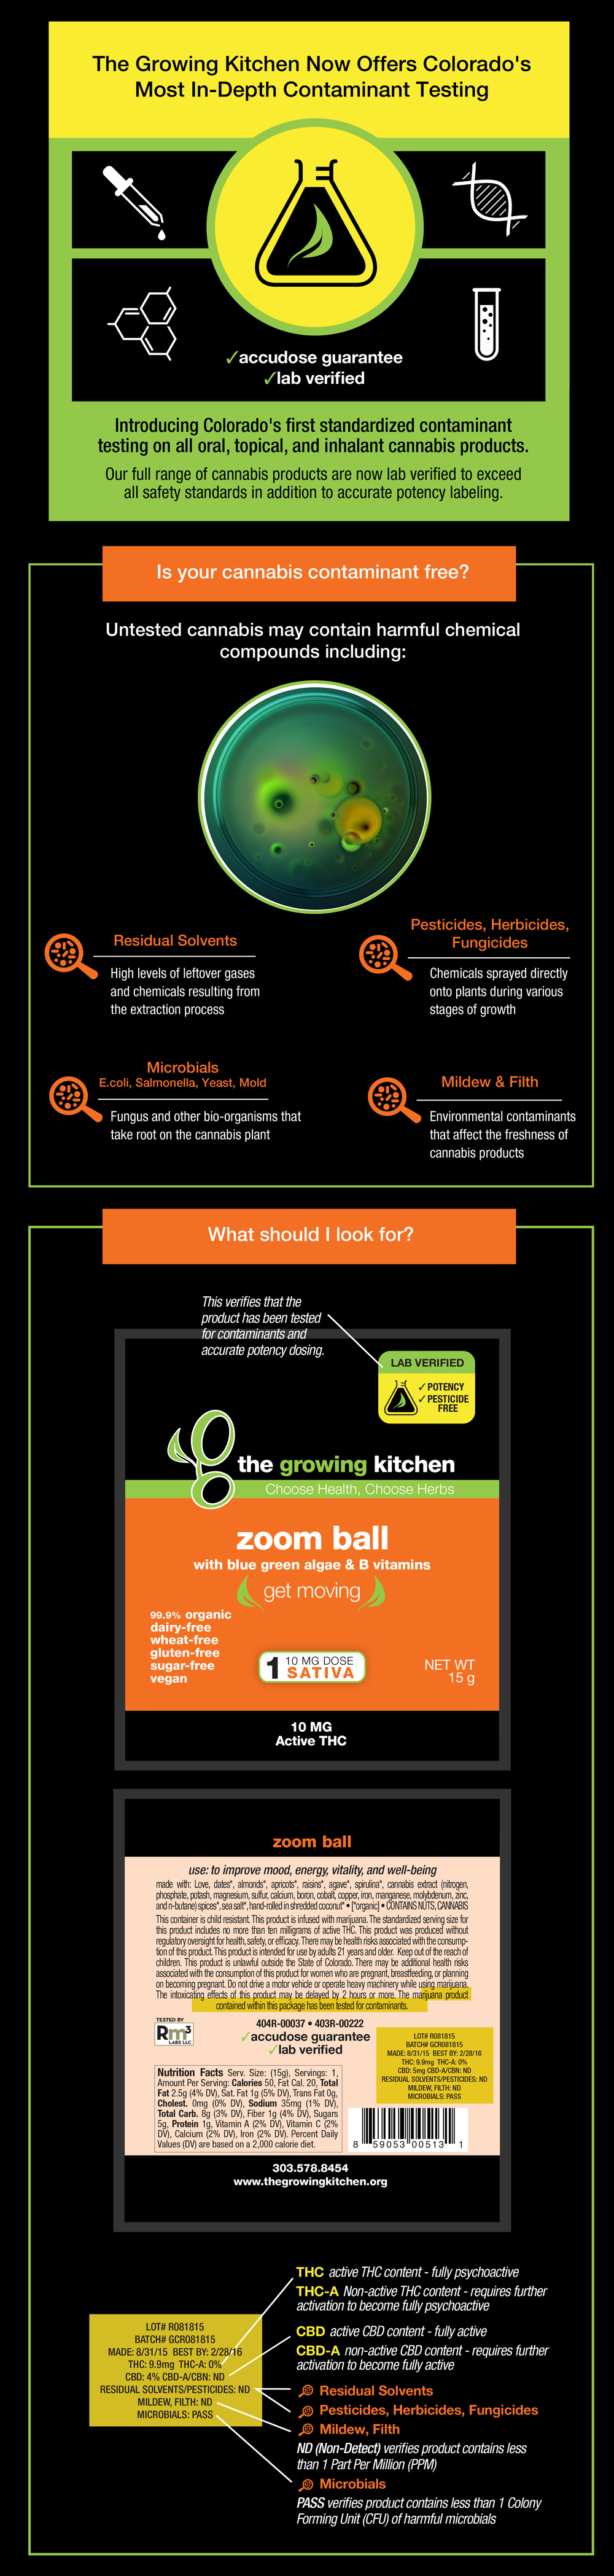 The Growing Kitchen Pesticide Contaminant Testing Colorado Cannabis infographic